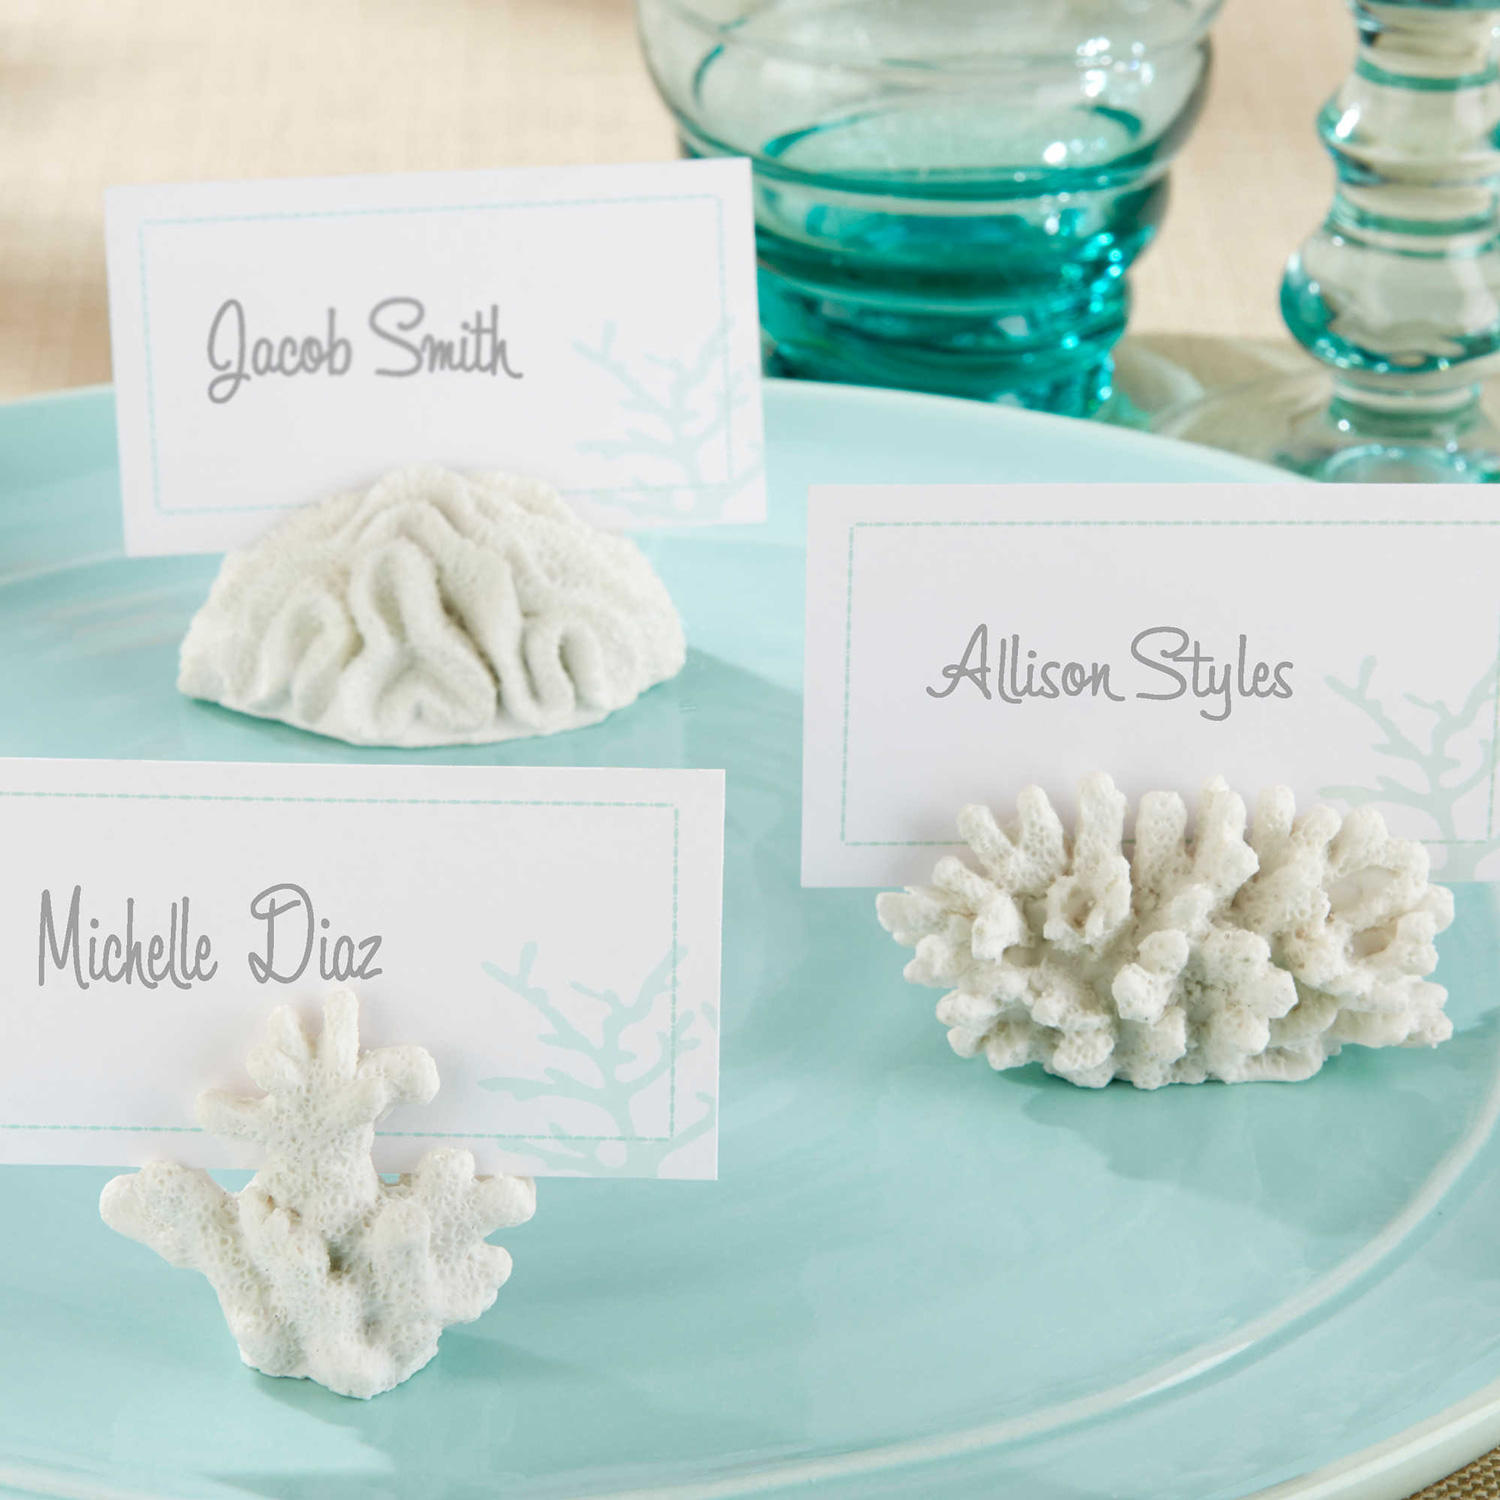 Coral shape place card holders entertaining wedding party tropical theme